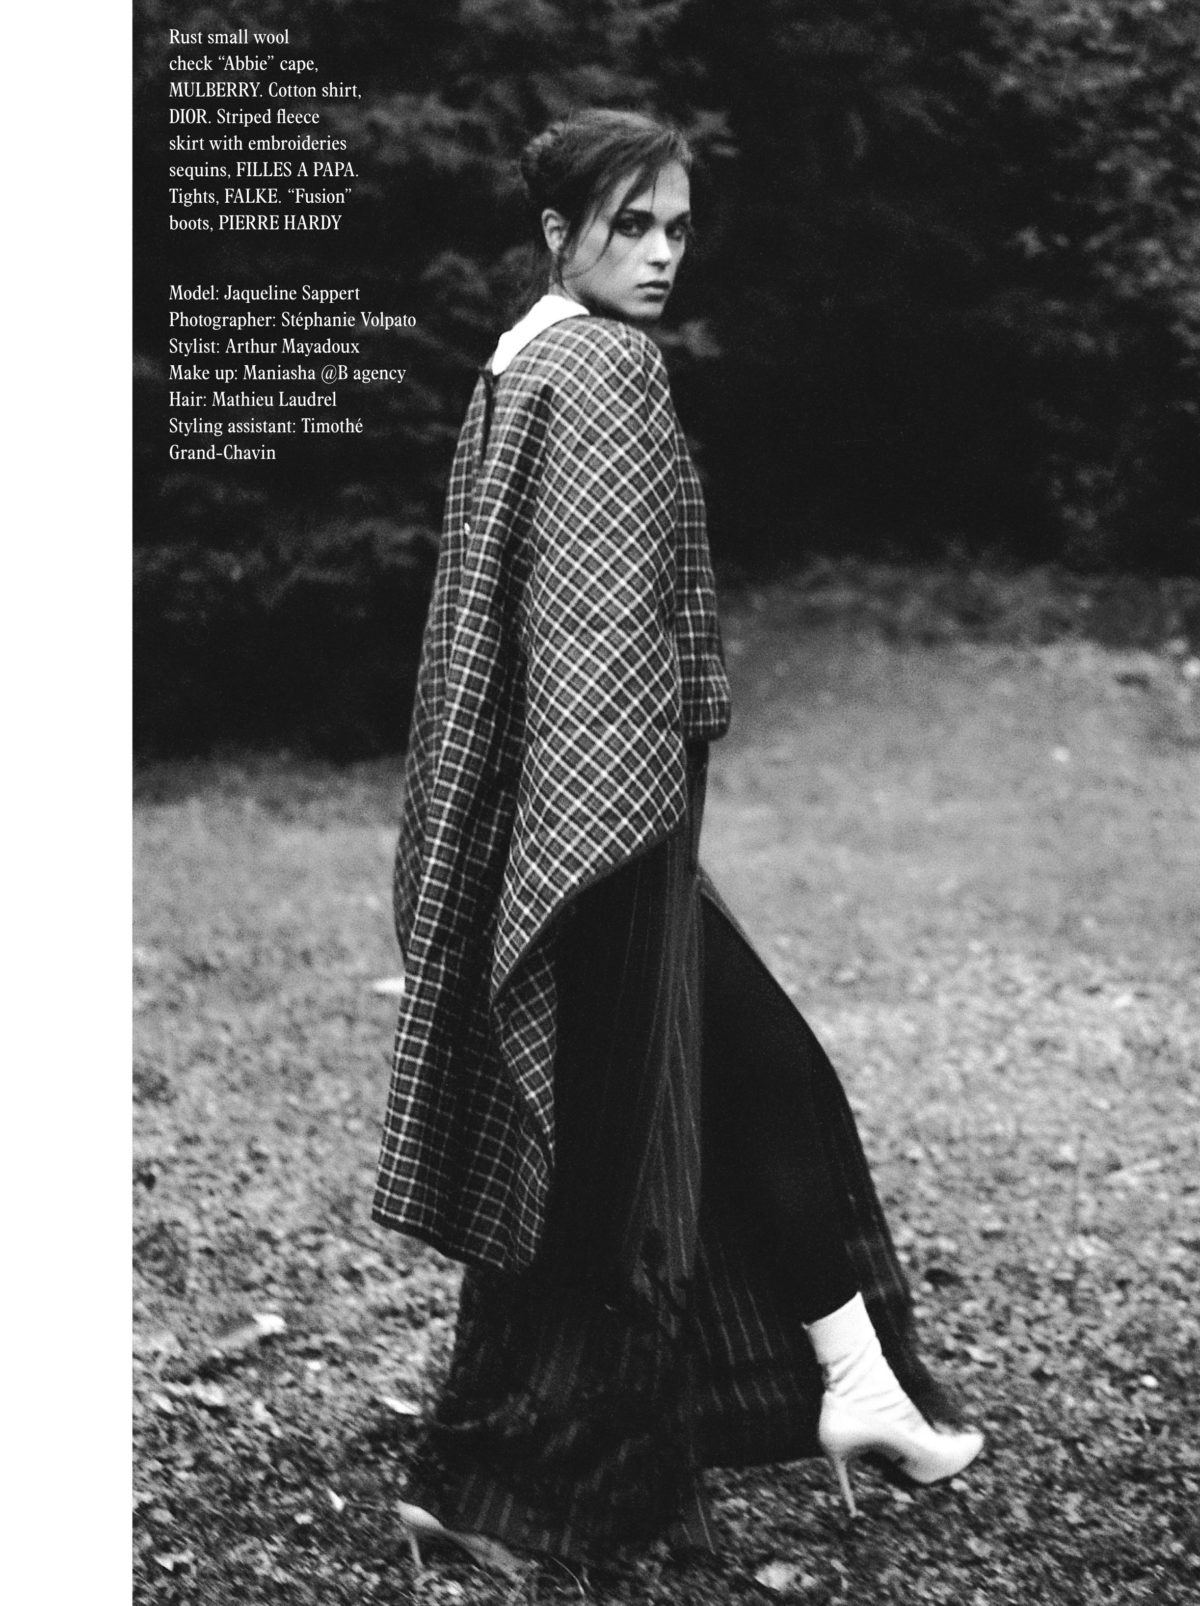 Styled by Arthur Mayadoux with Dior, Mulberry, Filles à Papa, Falke, Pierre Hardy / Make up Maniasha / Hair Mathieu Laudrel